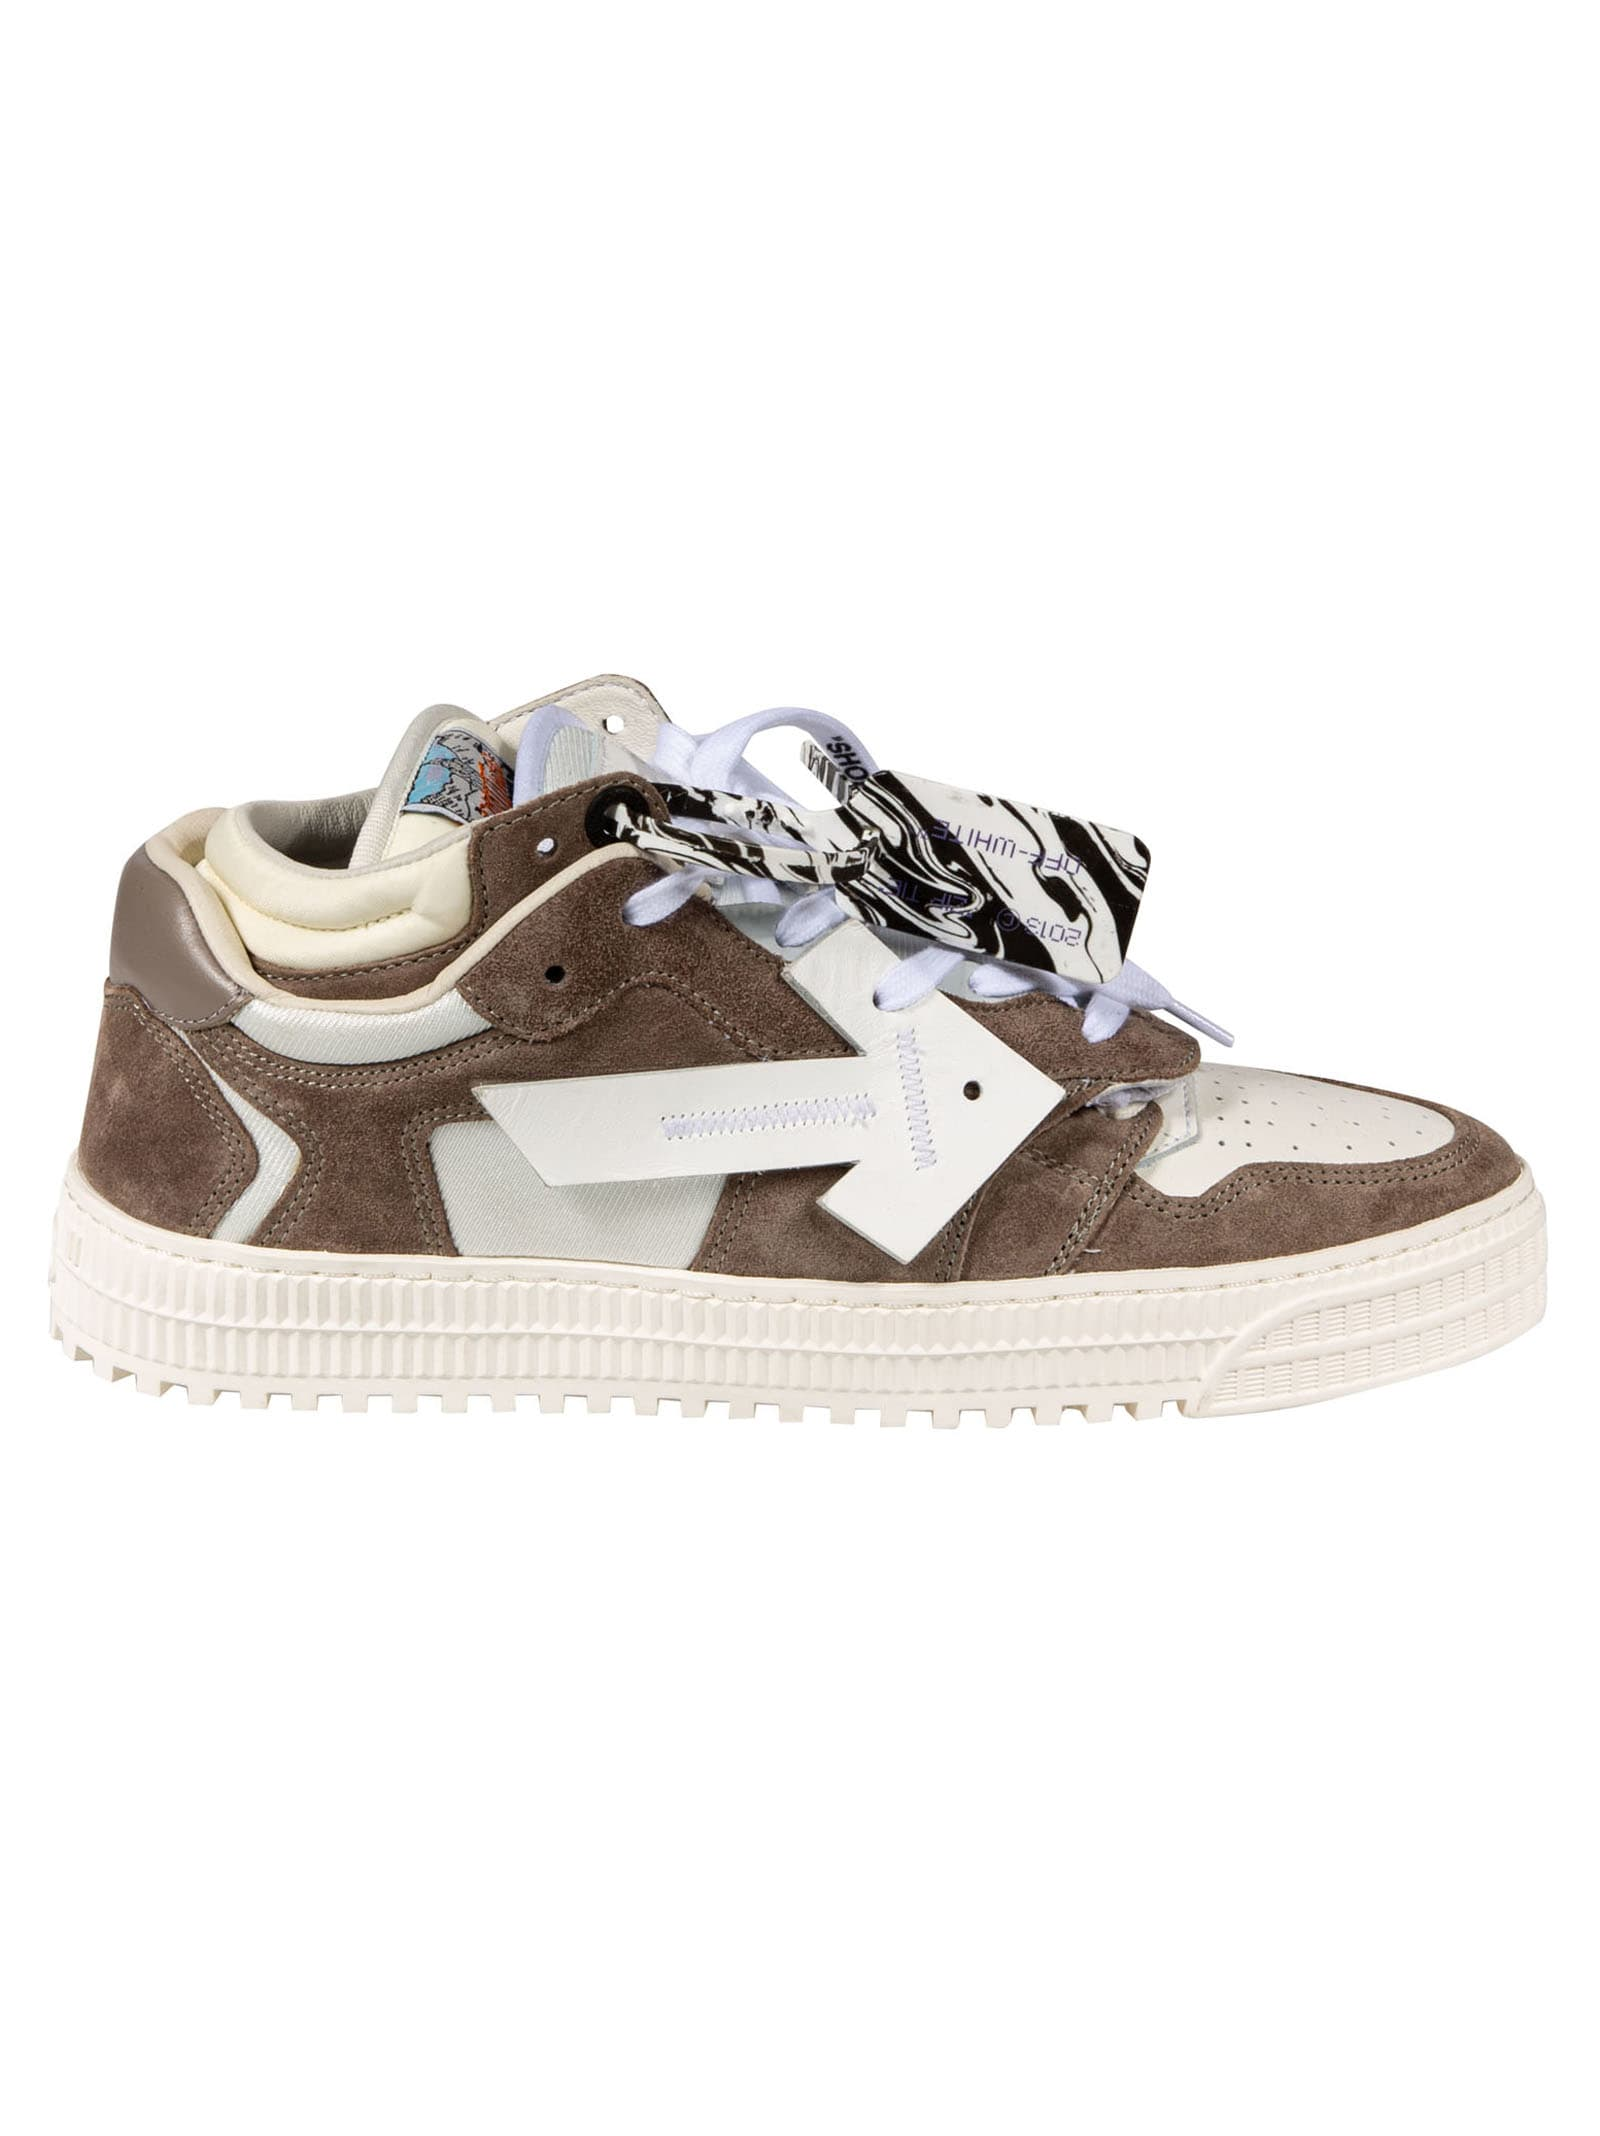 Off-White 3.0 OFF COURT LOW COW SUED SNEAKERS